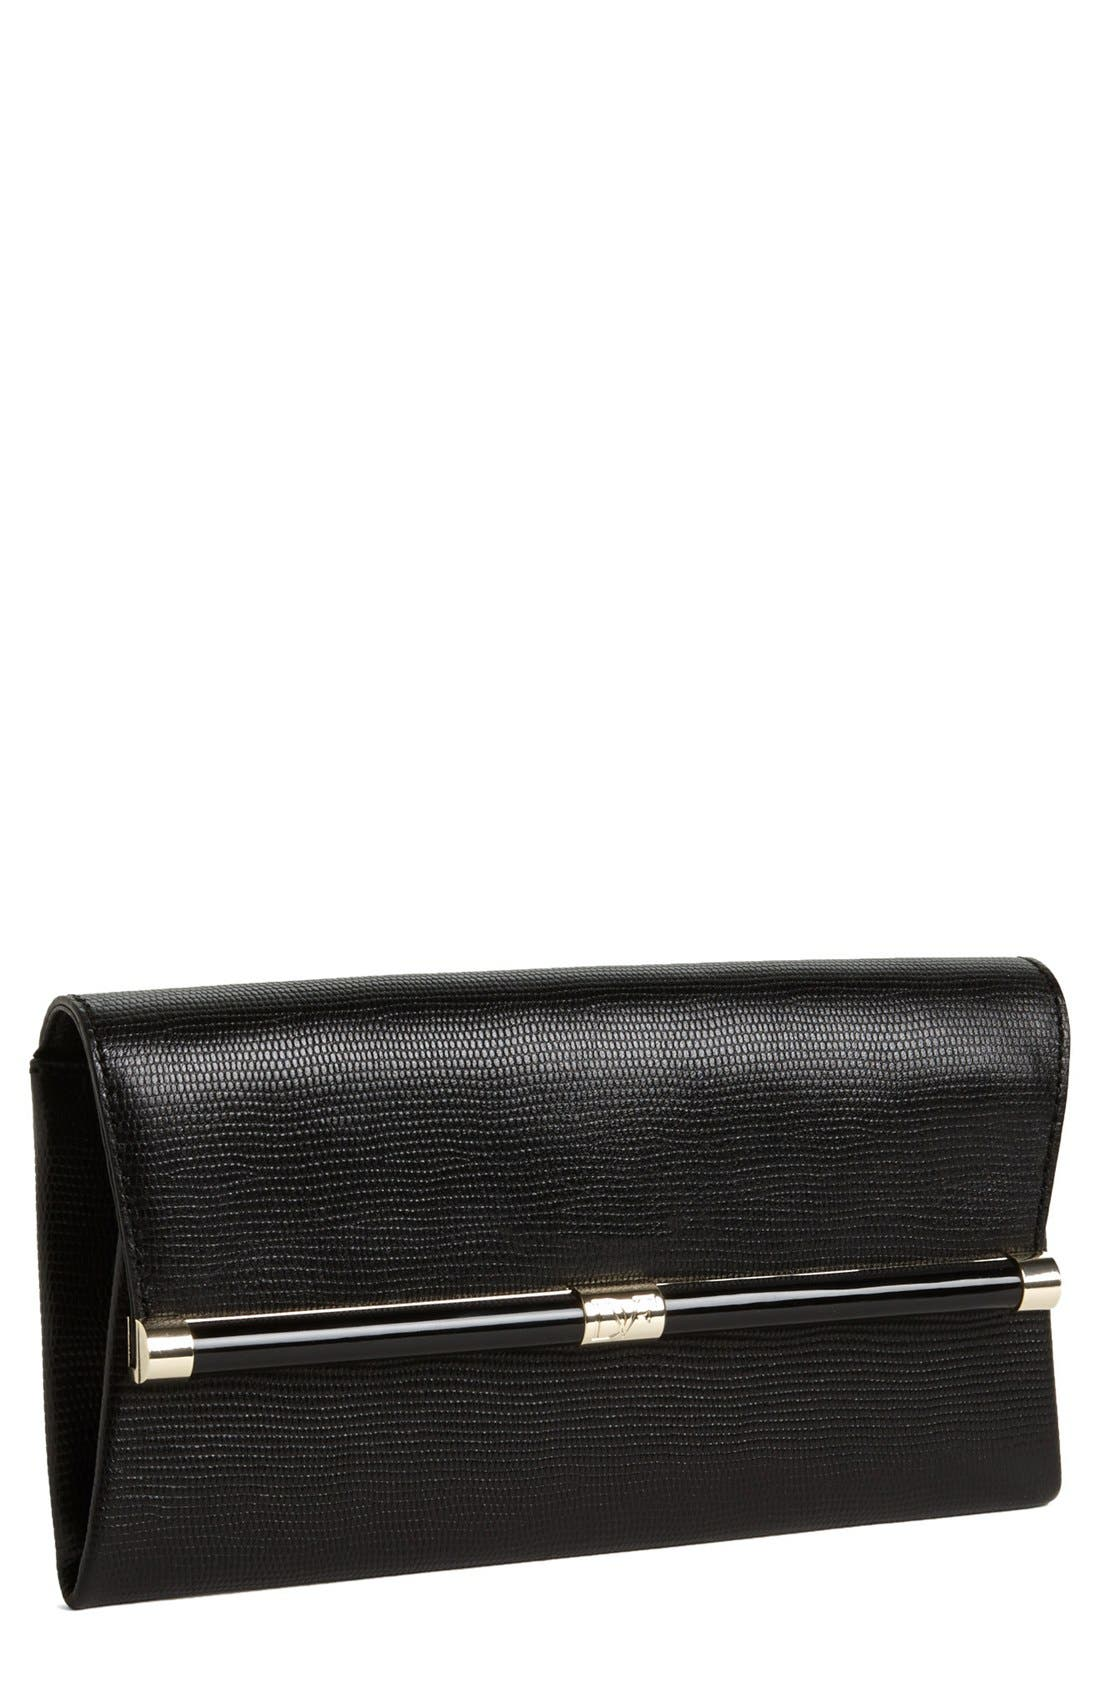 Alternate Image 1 Selected - Diane von Furstenberg '440' Leather Envelope Clutch